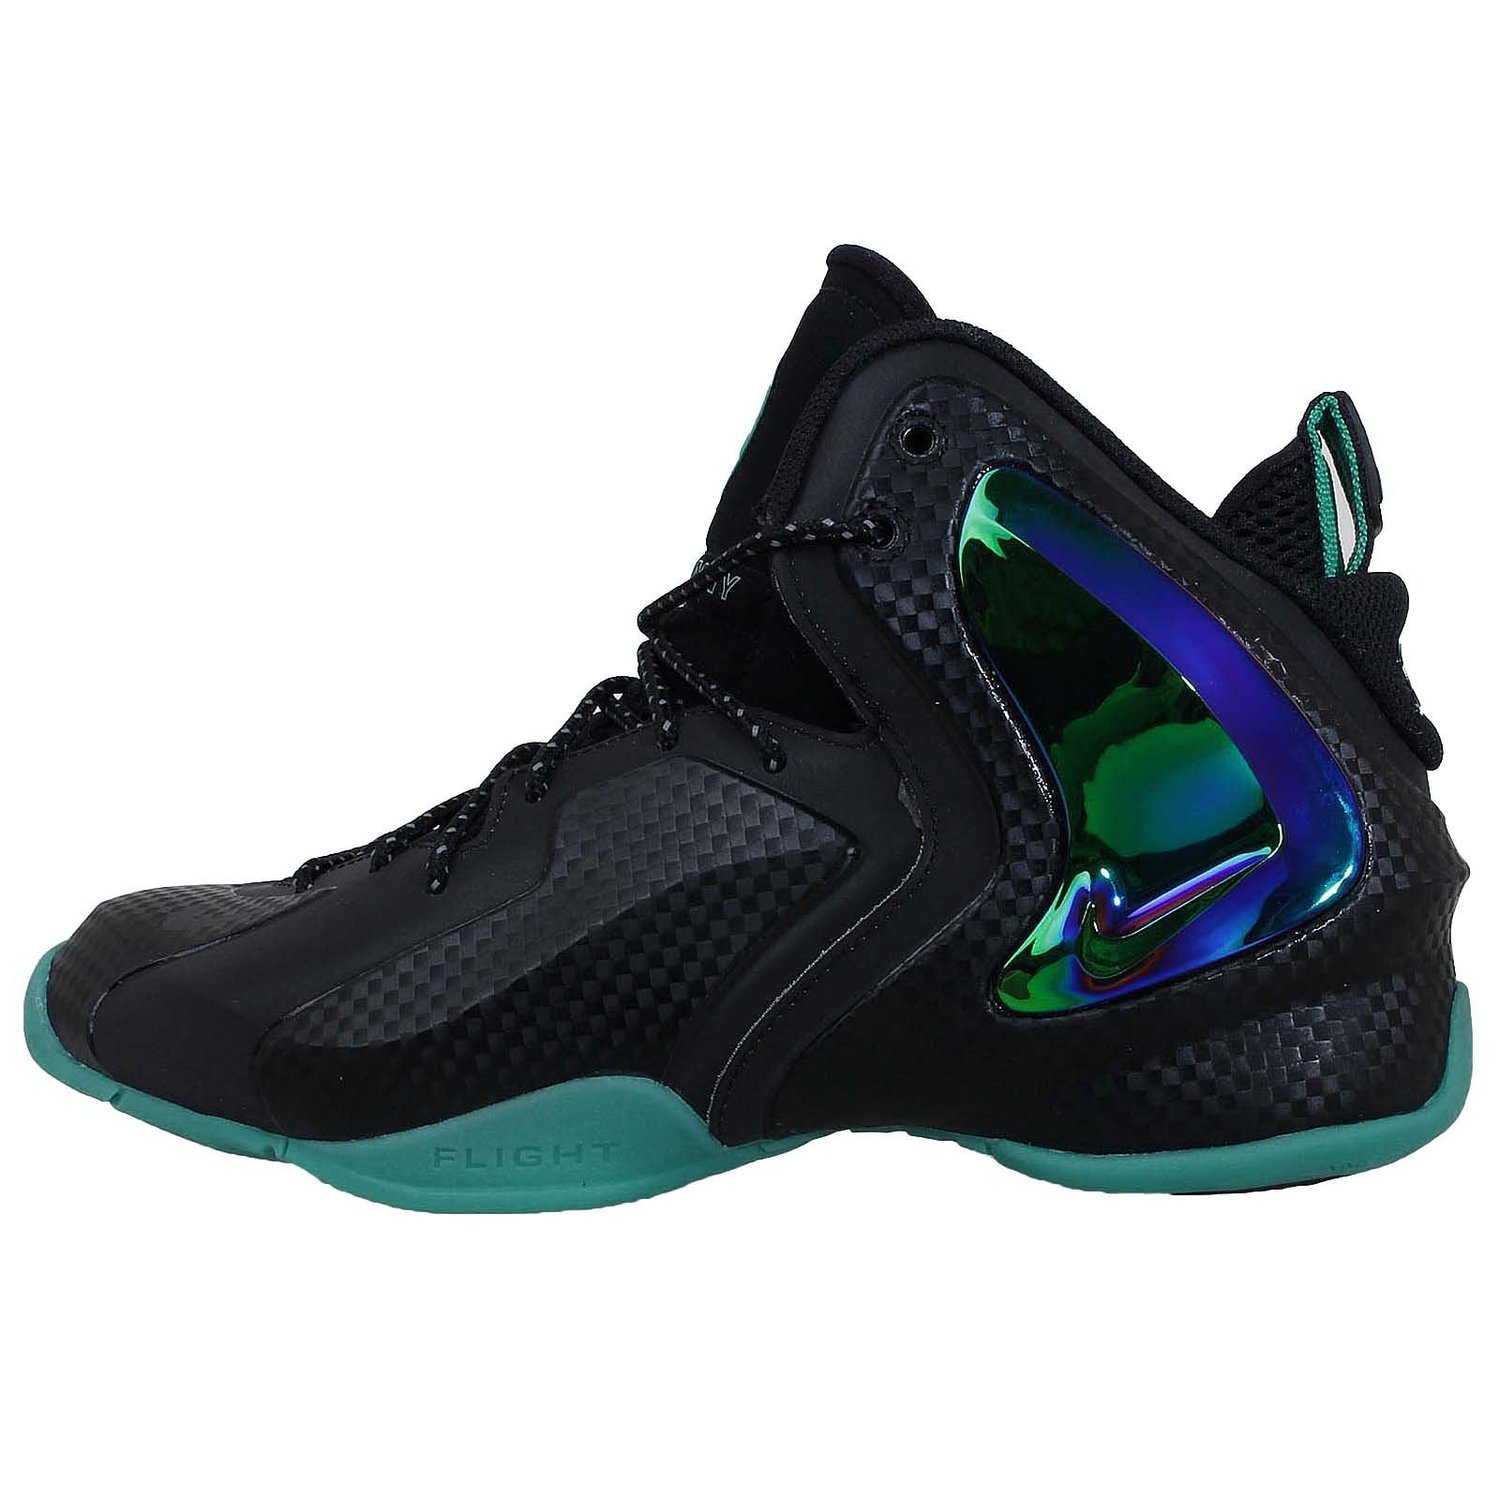 huge discount bb5cd 3b461 Get Quotations · Nike Men s LIL Penny Posite, BLACK BLACK-REFLECT  SILVER-HYPER JADE,